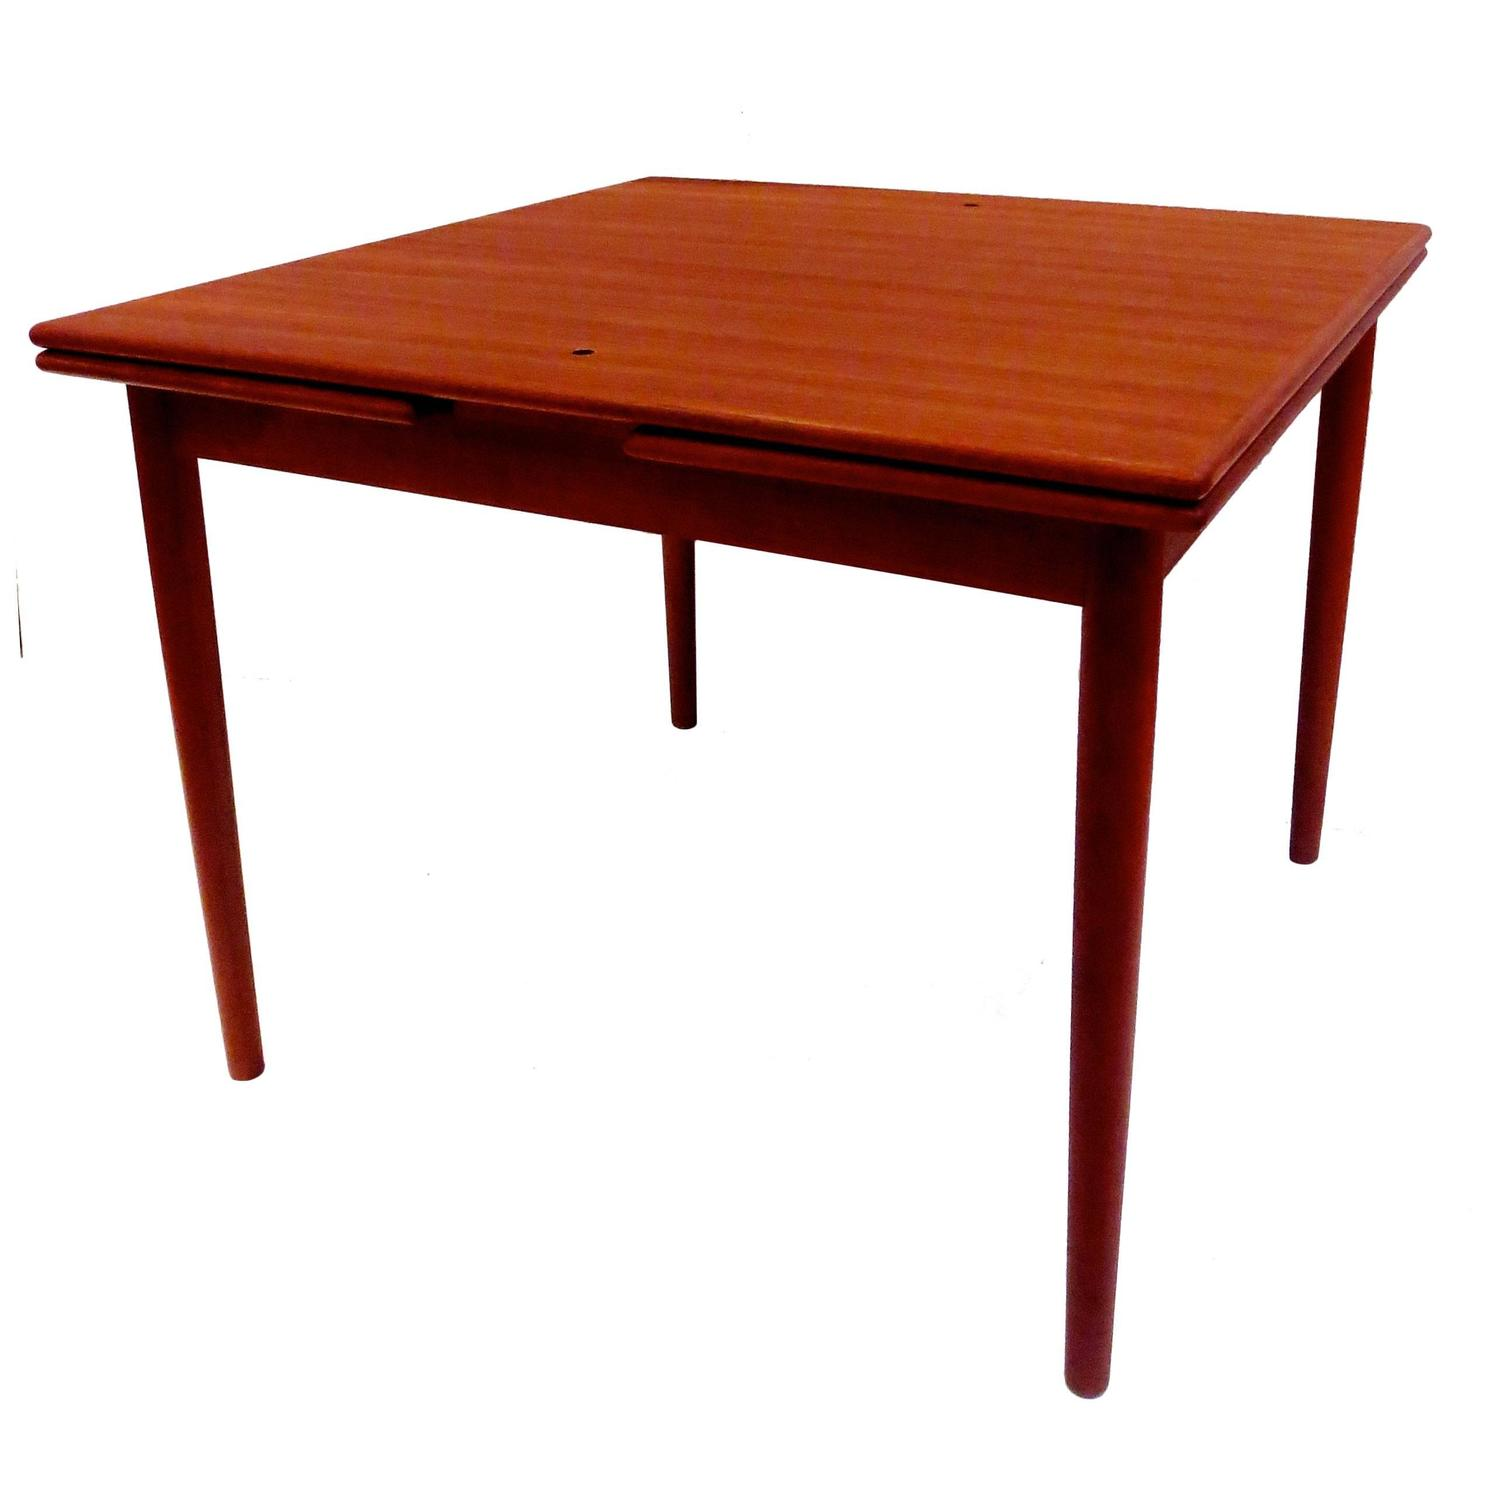 Georg petersen danish modern flip top teak and leather for Dining room game table